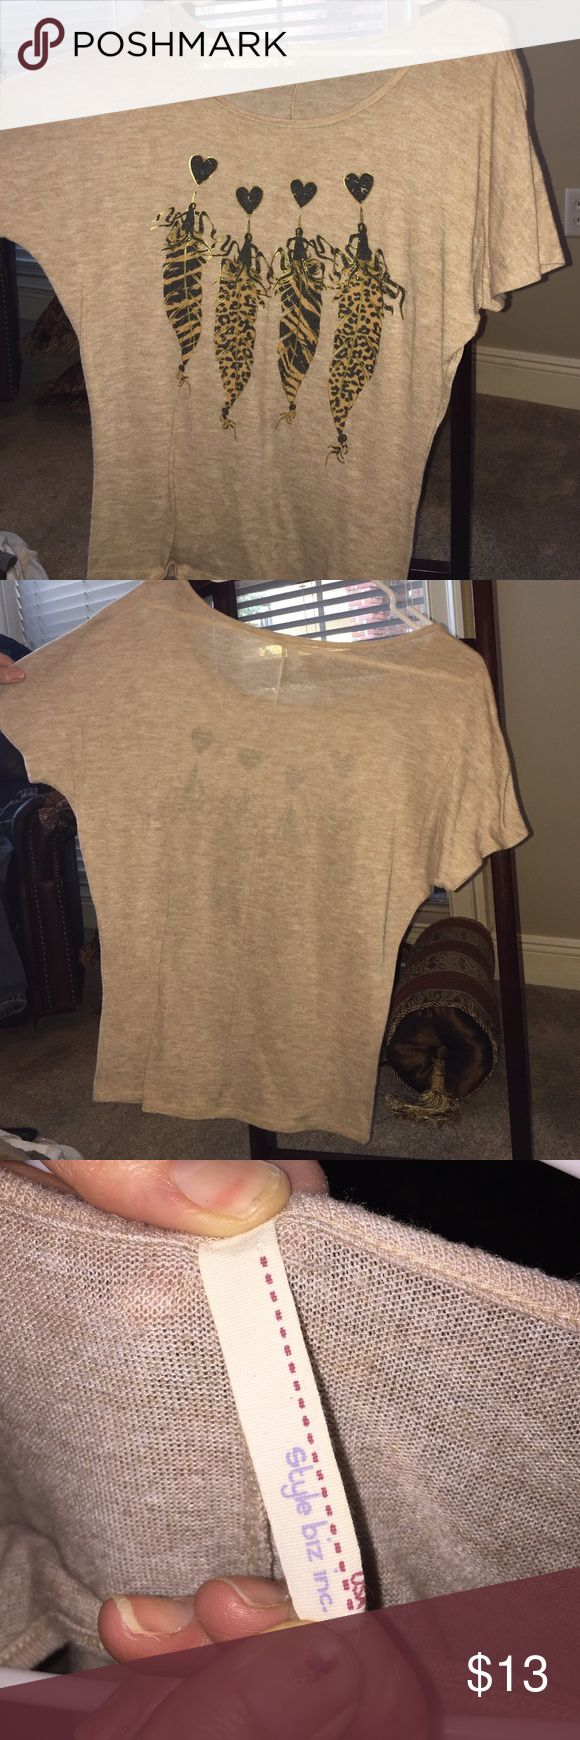 Soft beige tee wide neck with hearts and feathers Lightly worn beige tee size small tee with soft material cute hearts and feathers. Wide neck INC Tops Tees - Short Sleeve